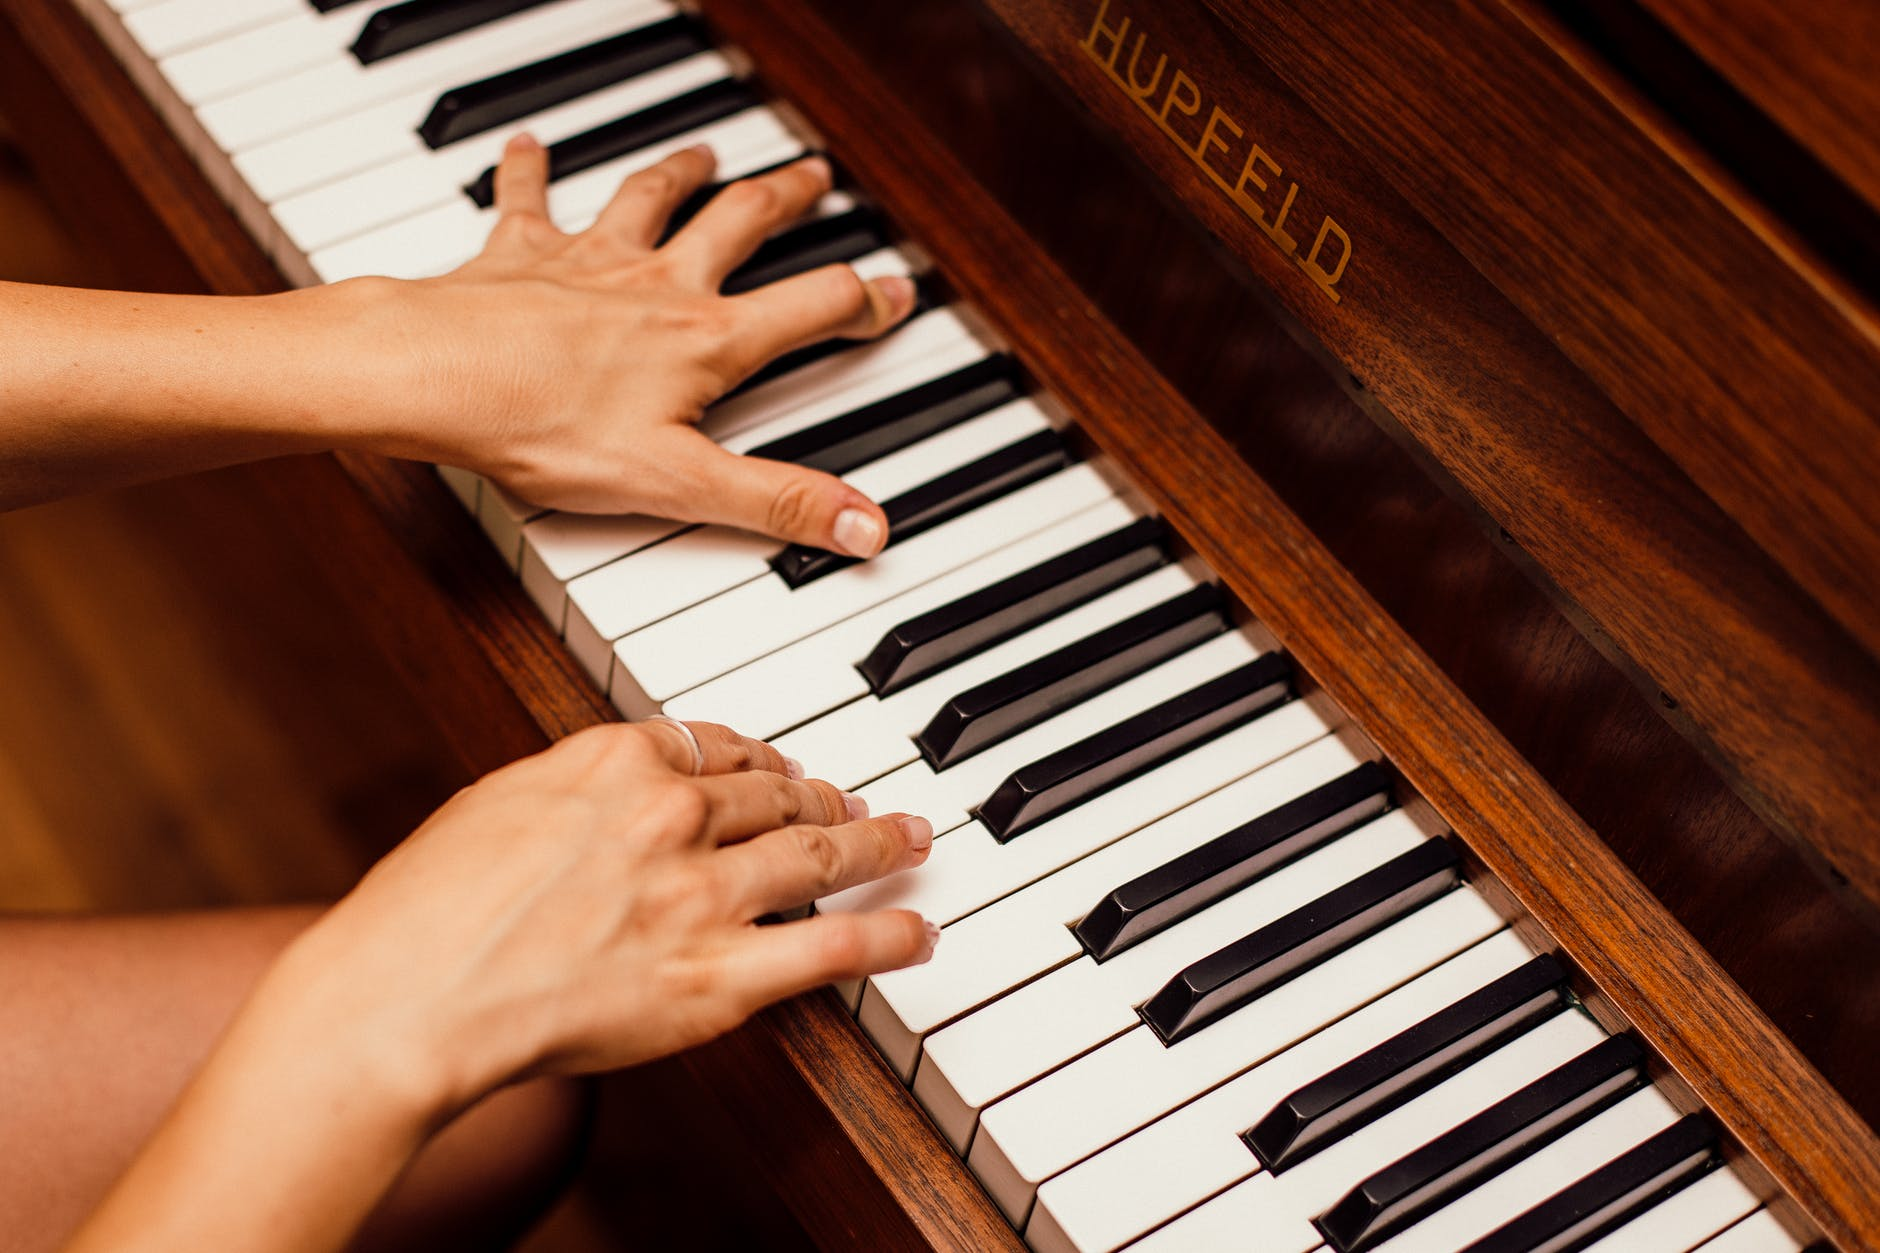 Piano is known to be one of the most fundamental instruments in the world